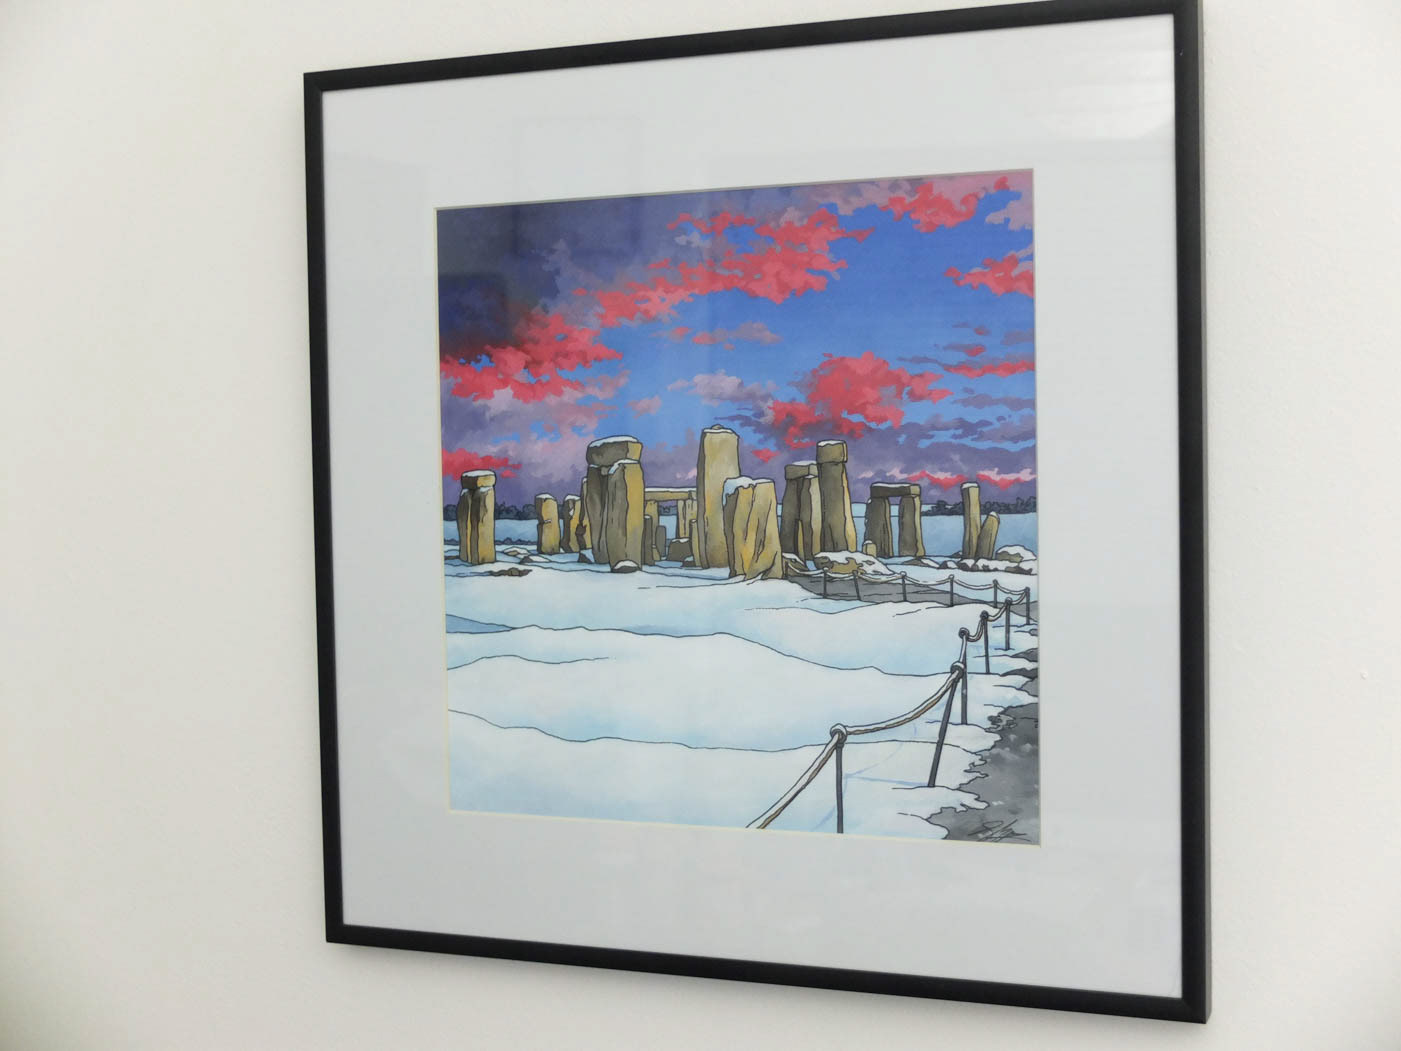 Illustration by jonathan stonehenge at twilight a colourful winter scene with an electric skyline this 28 x 28cm original painting is presented in a 40 x 40cm glazed frame jeuxipadfo Gallery